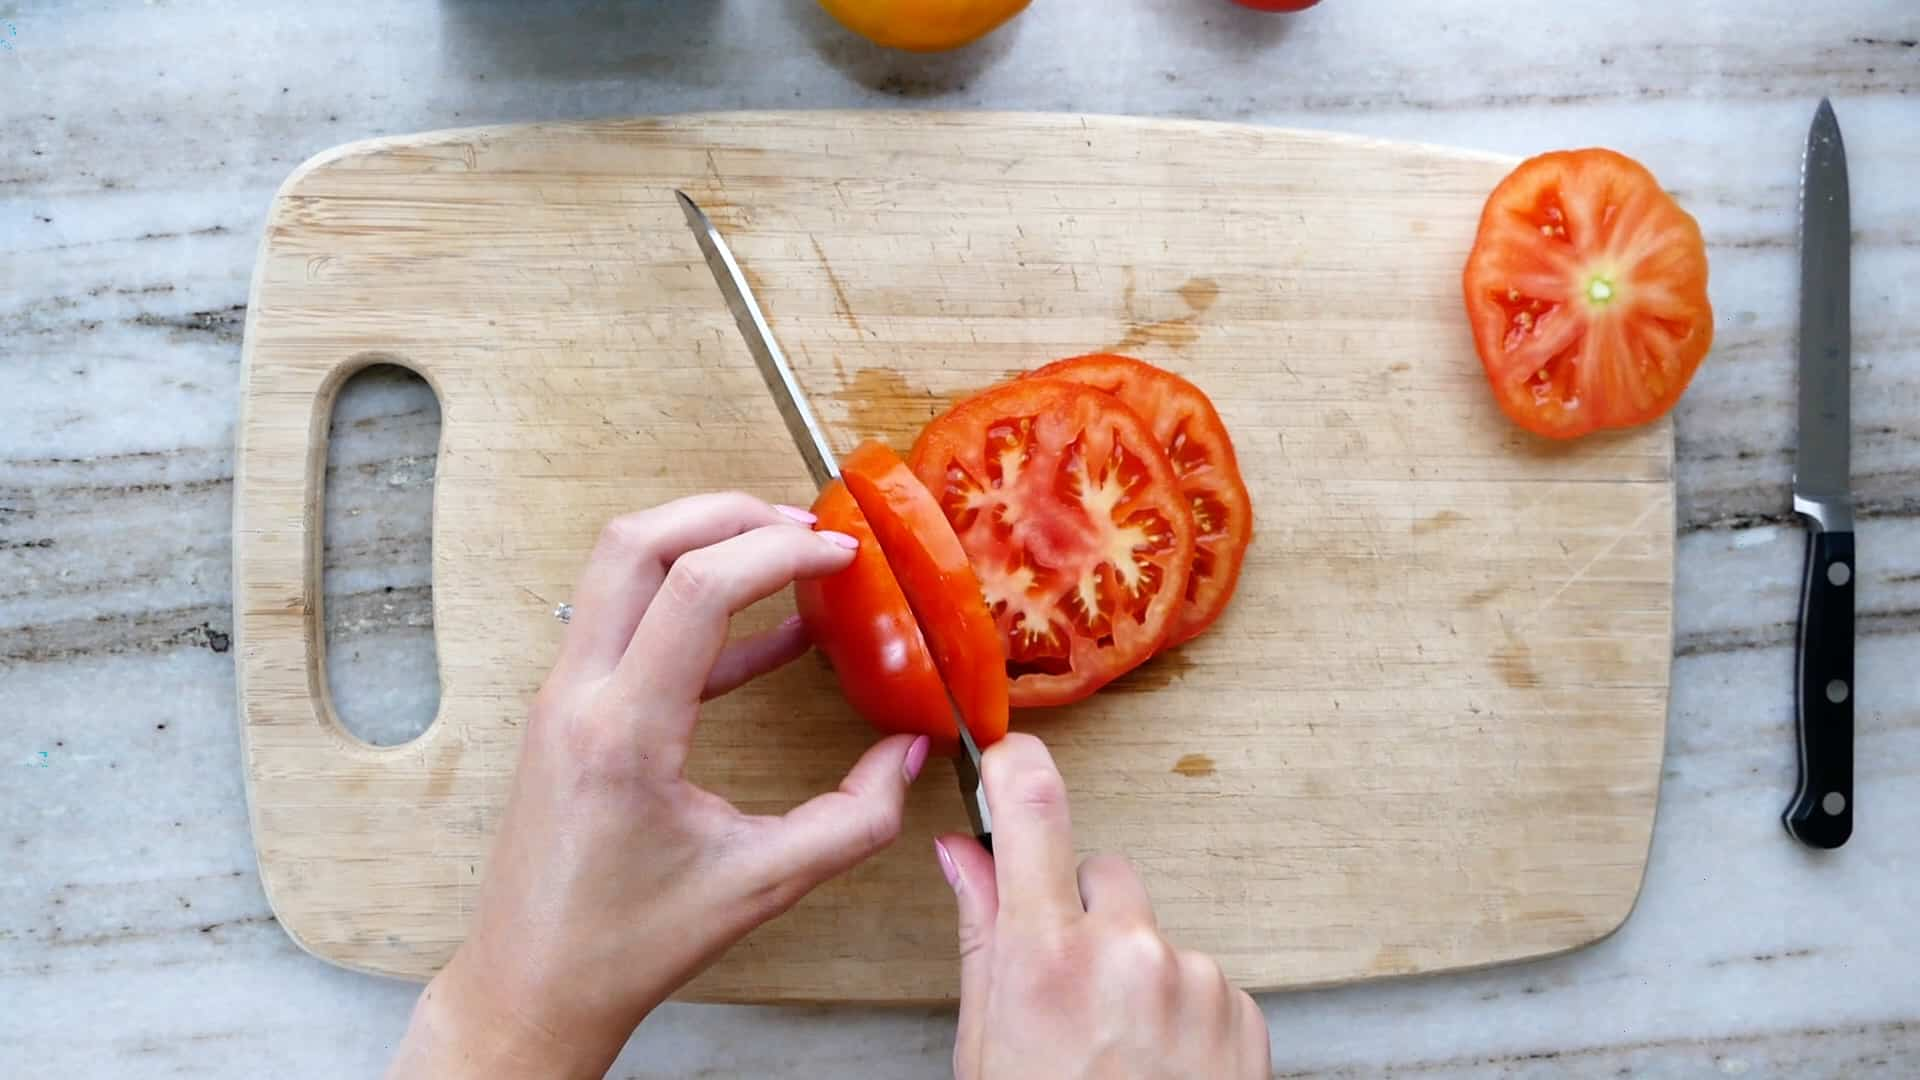 woman slicing a beefsteak tomato with a serrated knife on a cutting board